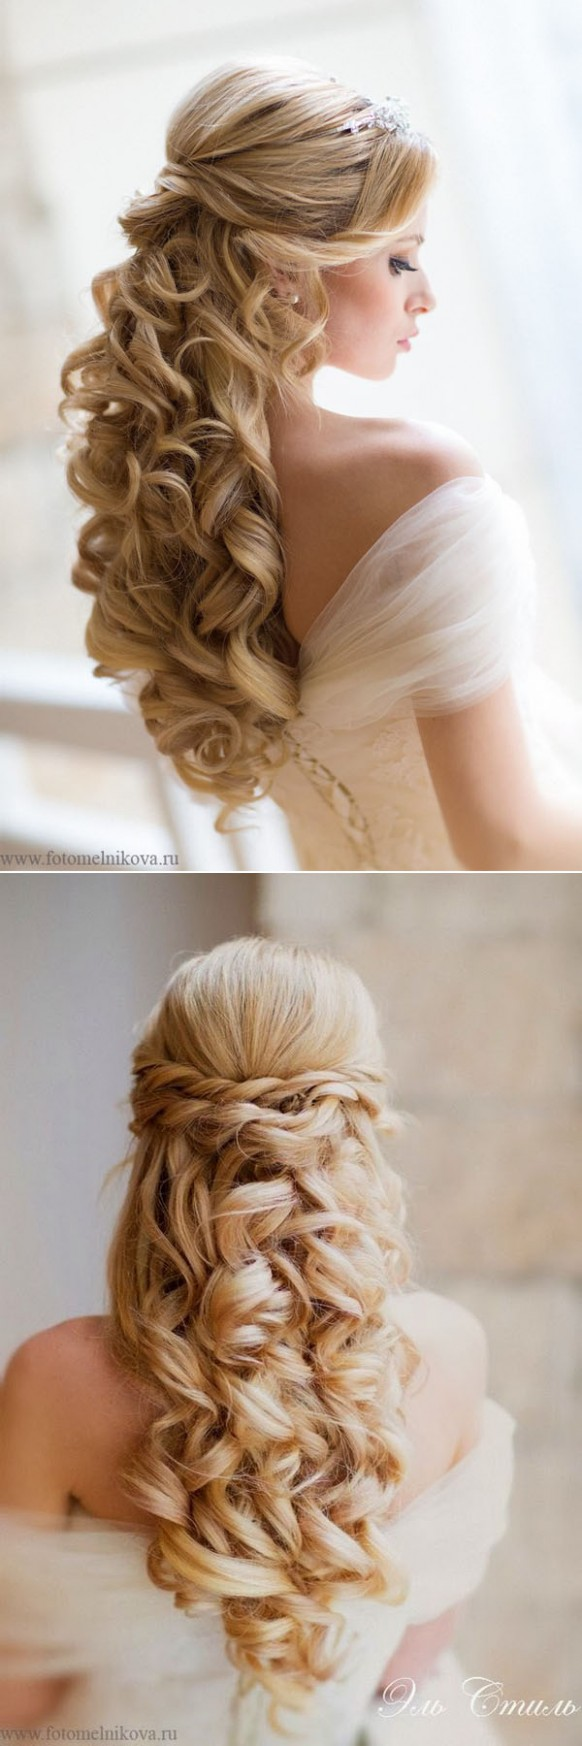 8 Awesome Half Up Half Down Wedding Hairstyle Ideas Curly Wedding Hairstyles Half Up Half Down